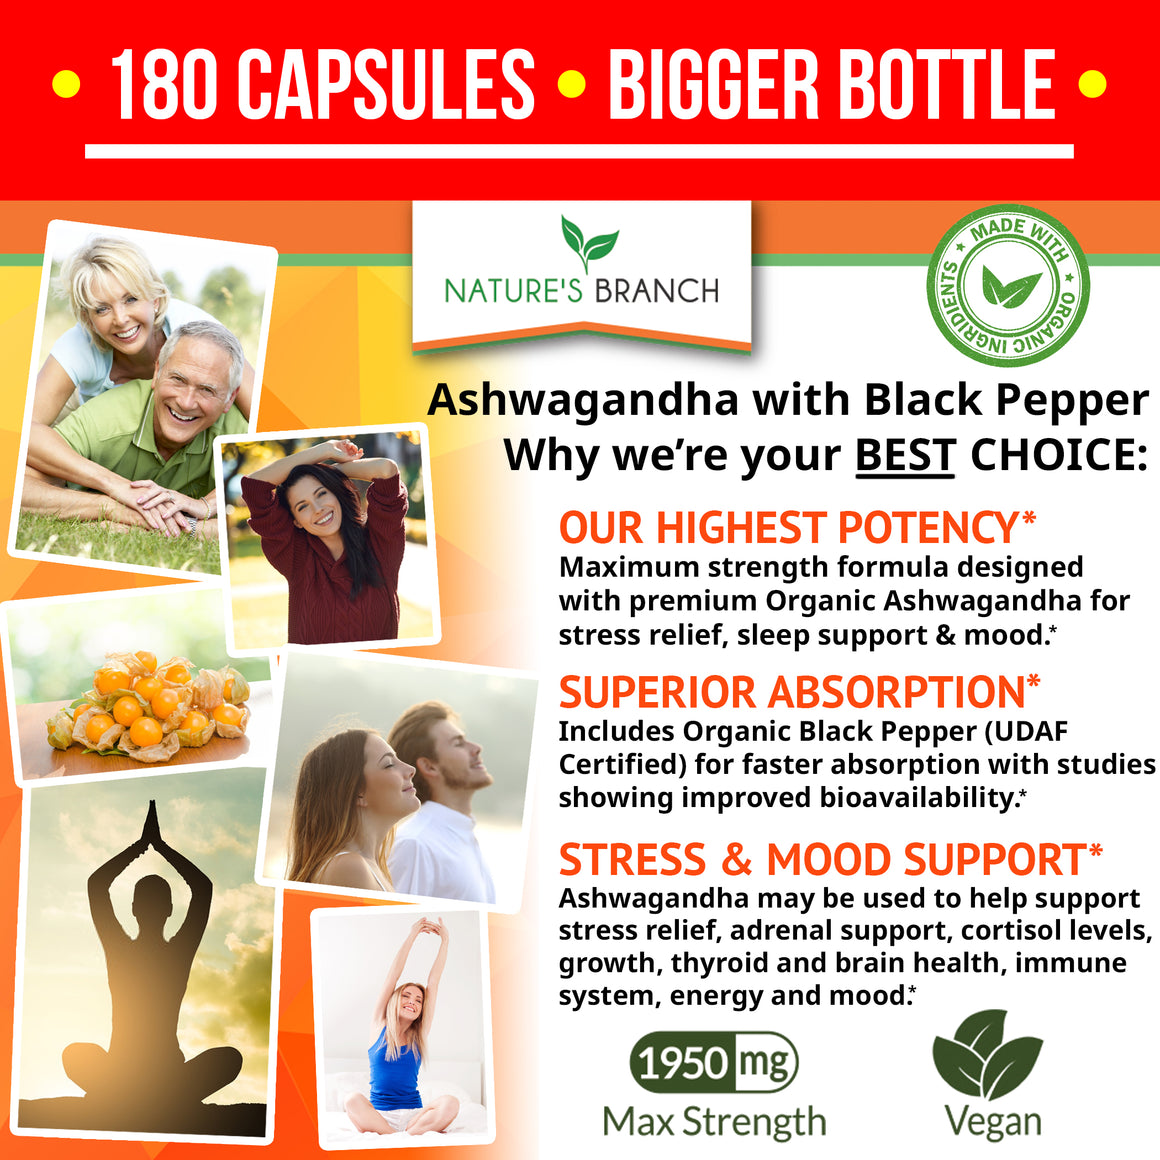 ORGANIC Ashwagandha and Black Pepper For Stress & Anxiety Relief (1950mg)